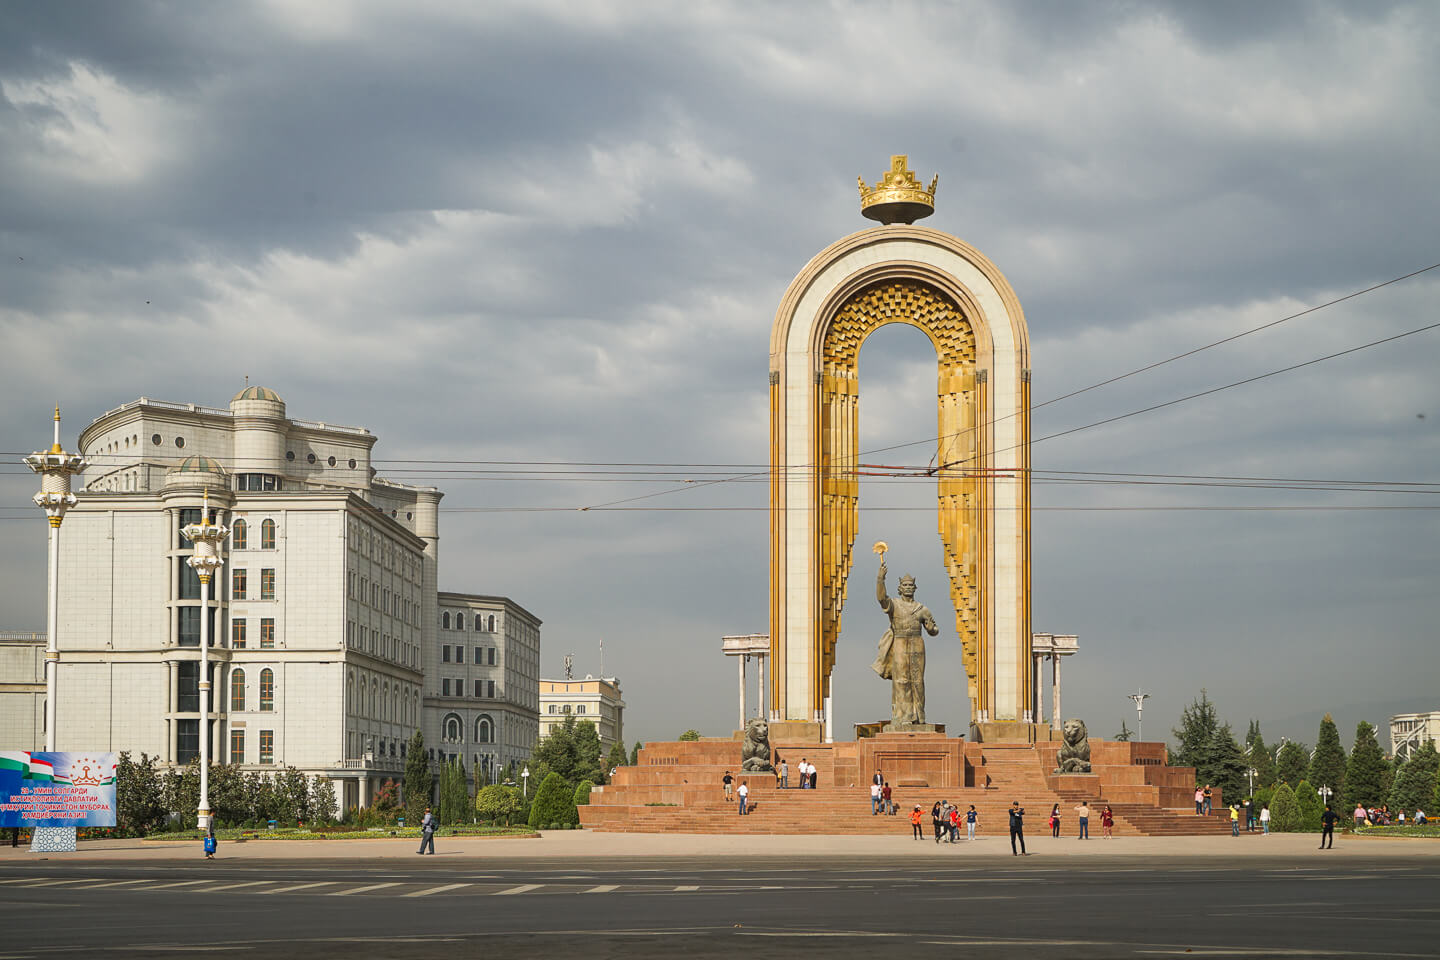 Dushanbe city center with golden statue of Ismail Somoni